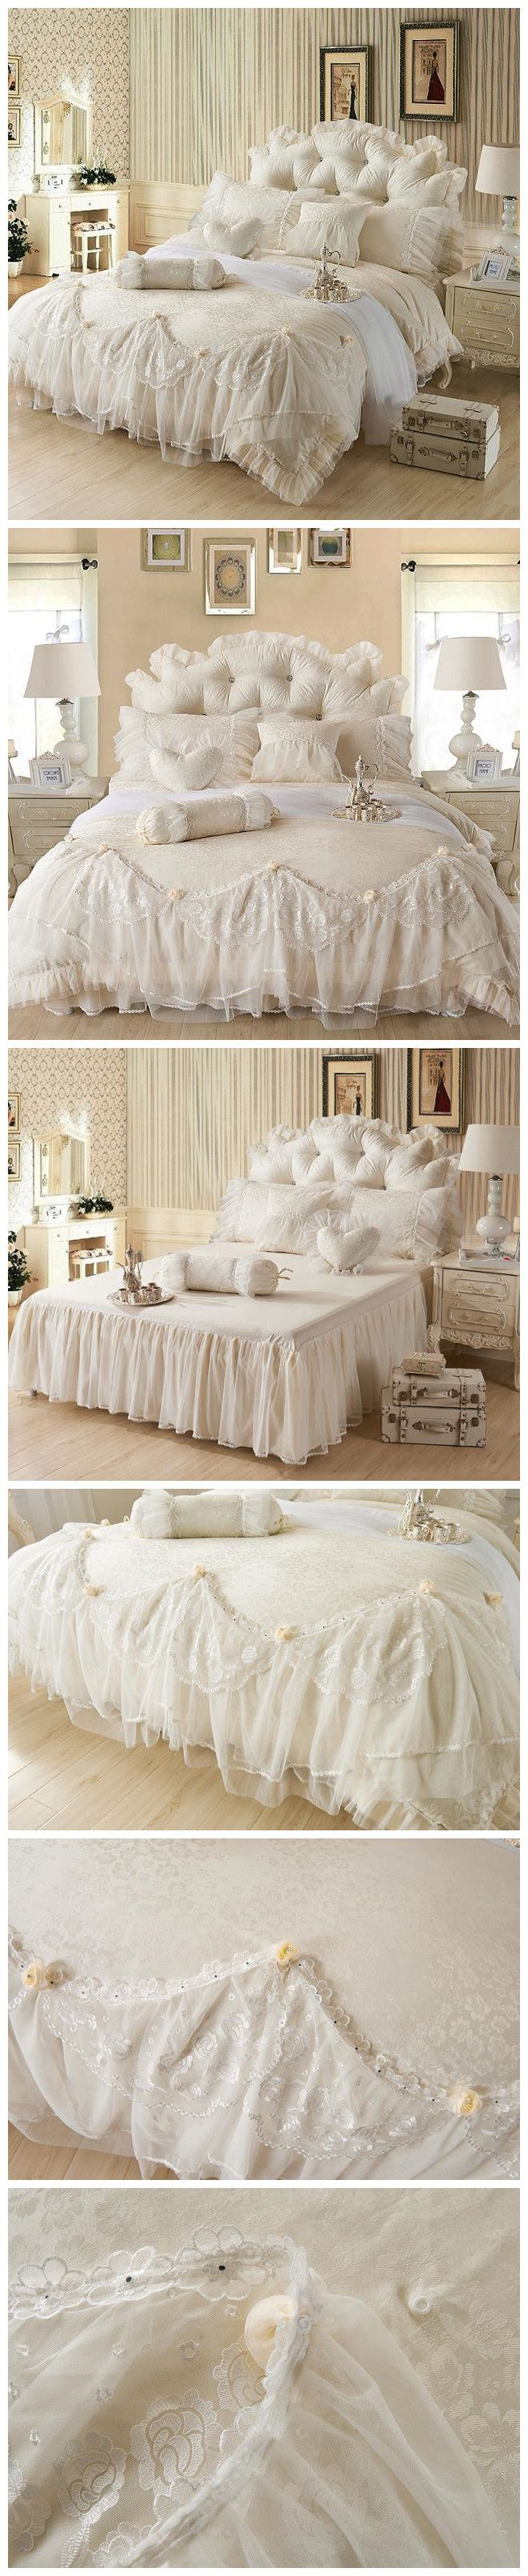 White Lace Ruffle Wedding Bedding Sets Queen Size Korean Princess Duvet Cover Sets Rose Comforter Sets 4 Piece